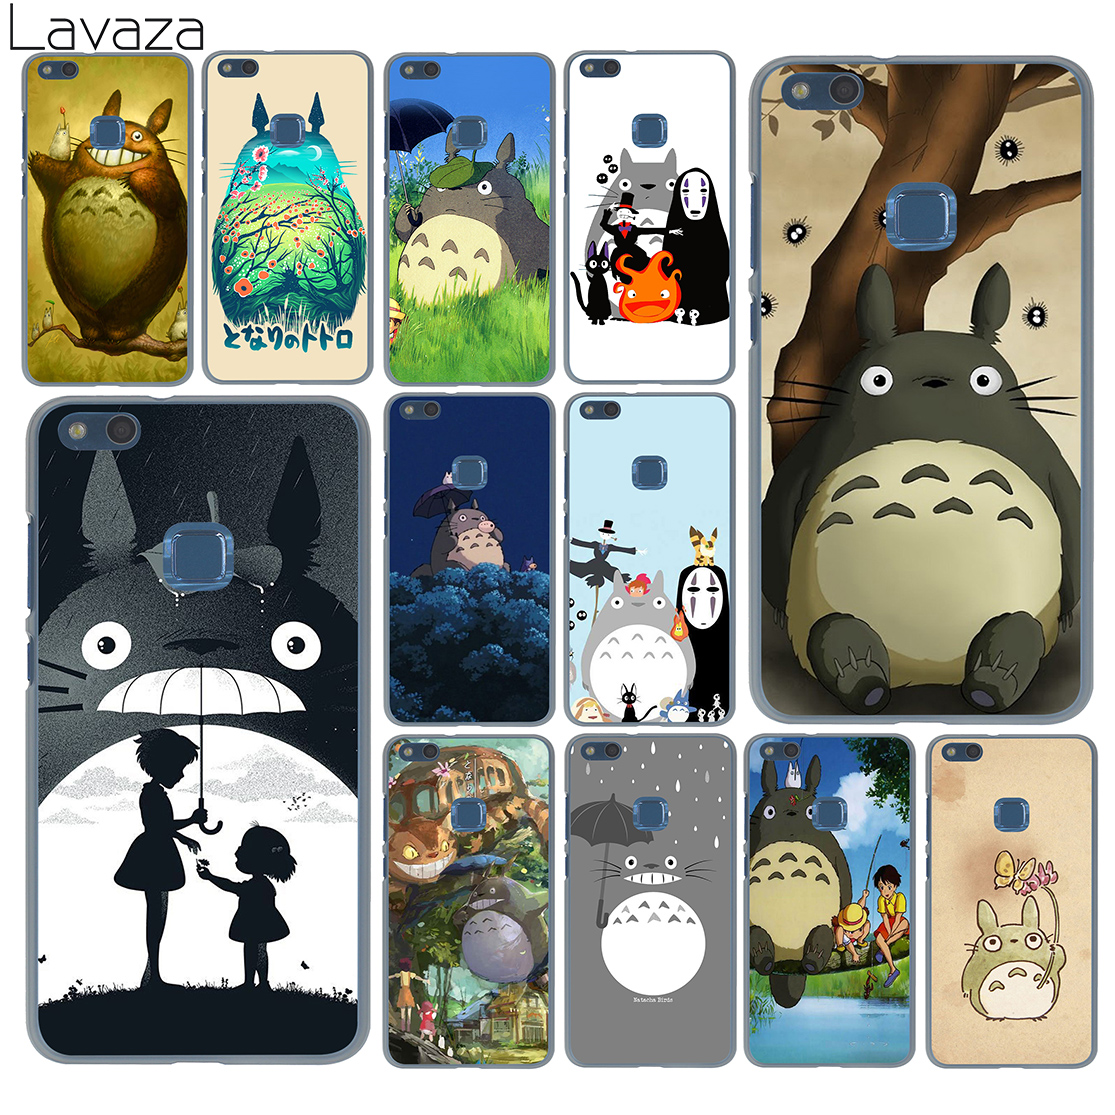 Lavaza My Neighbor Arriving Totoro Outing Case for Huawei P20 P10 P9 Plus P8 Lite Mini 2016 2017 P smart Mate 10 9 Pro Lite ...